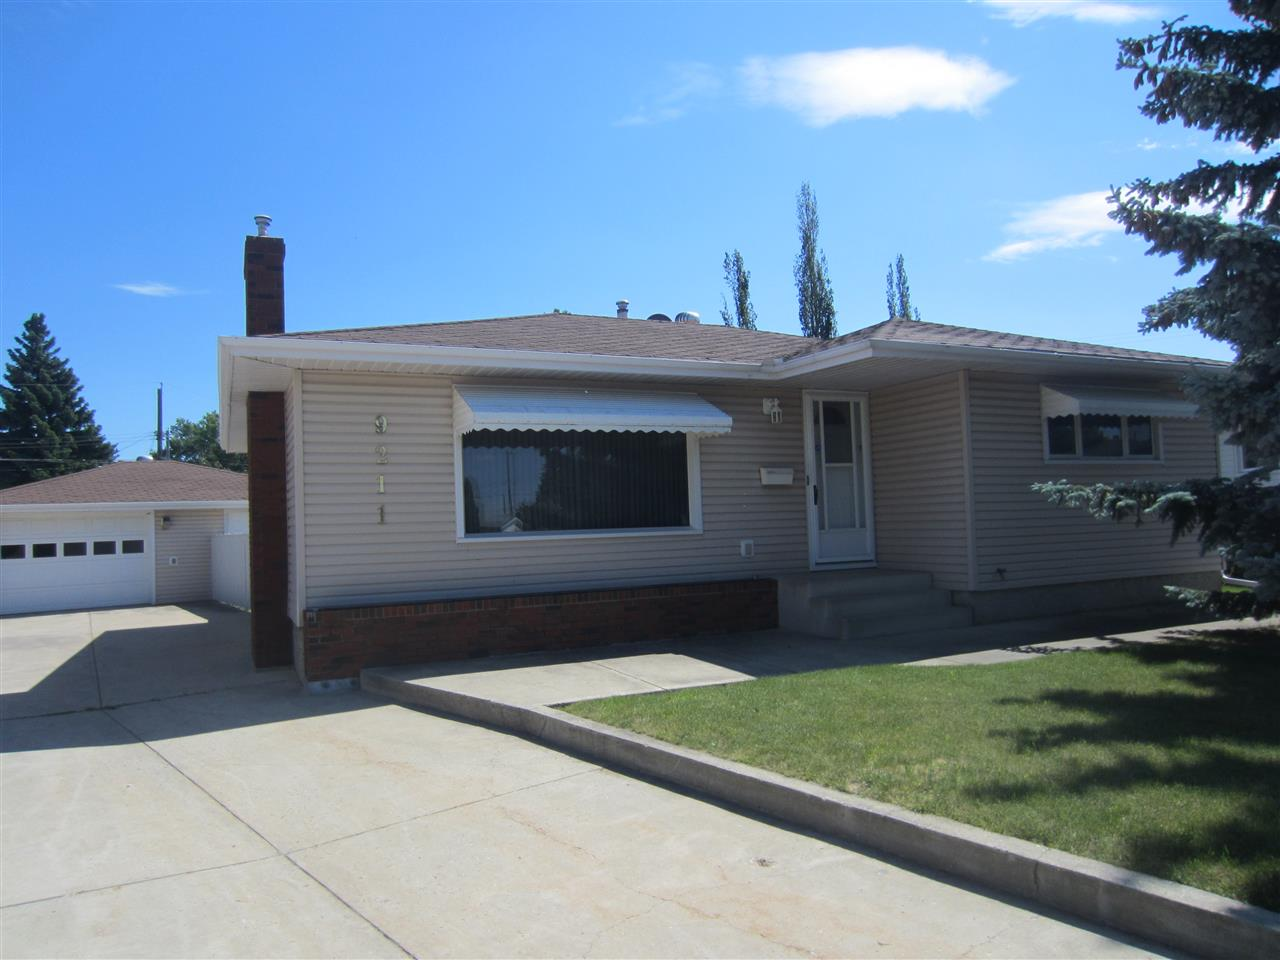 Main Photo: 9211 60 Street NW in Edmonton: Zone 18 House for sale : MLS(r) # E4069747